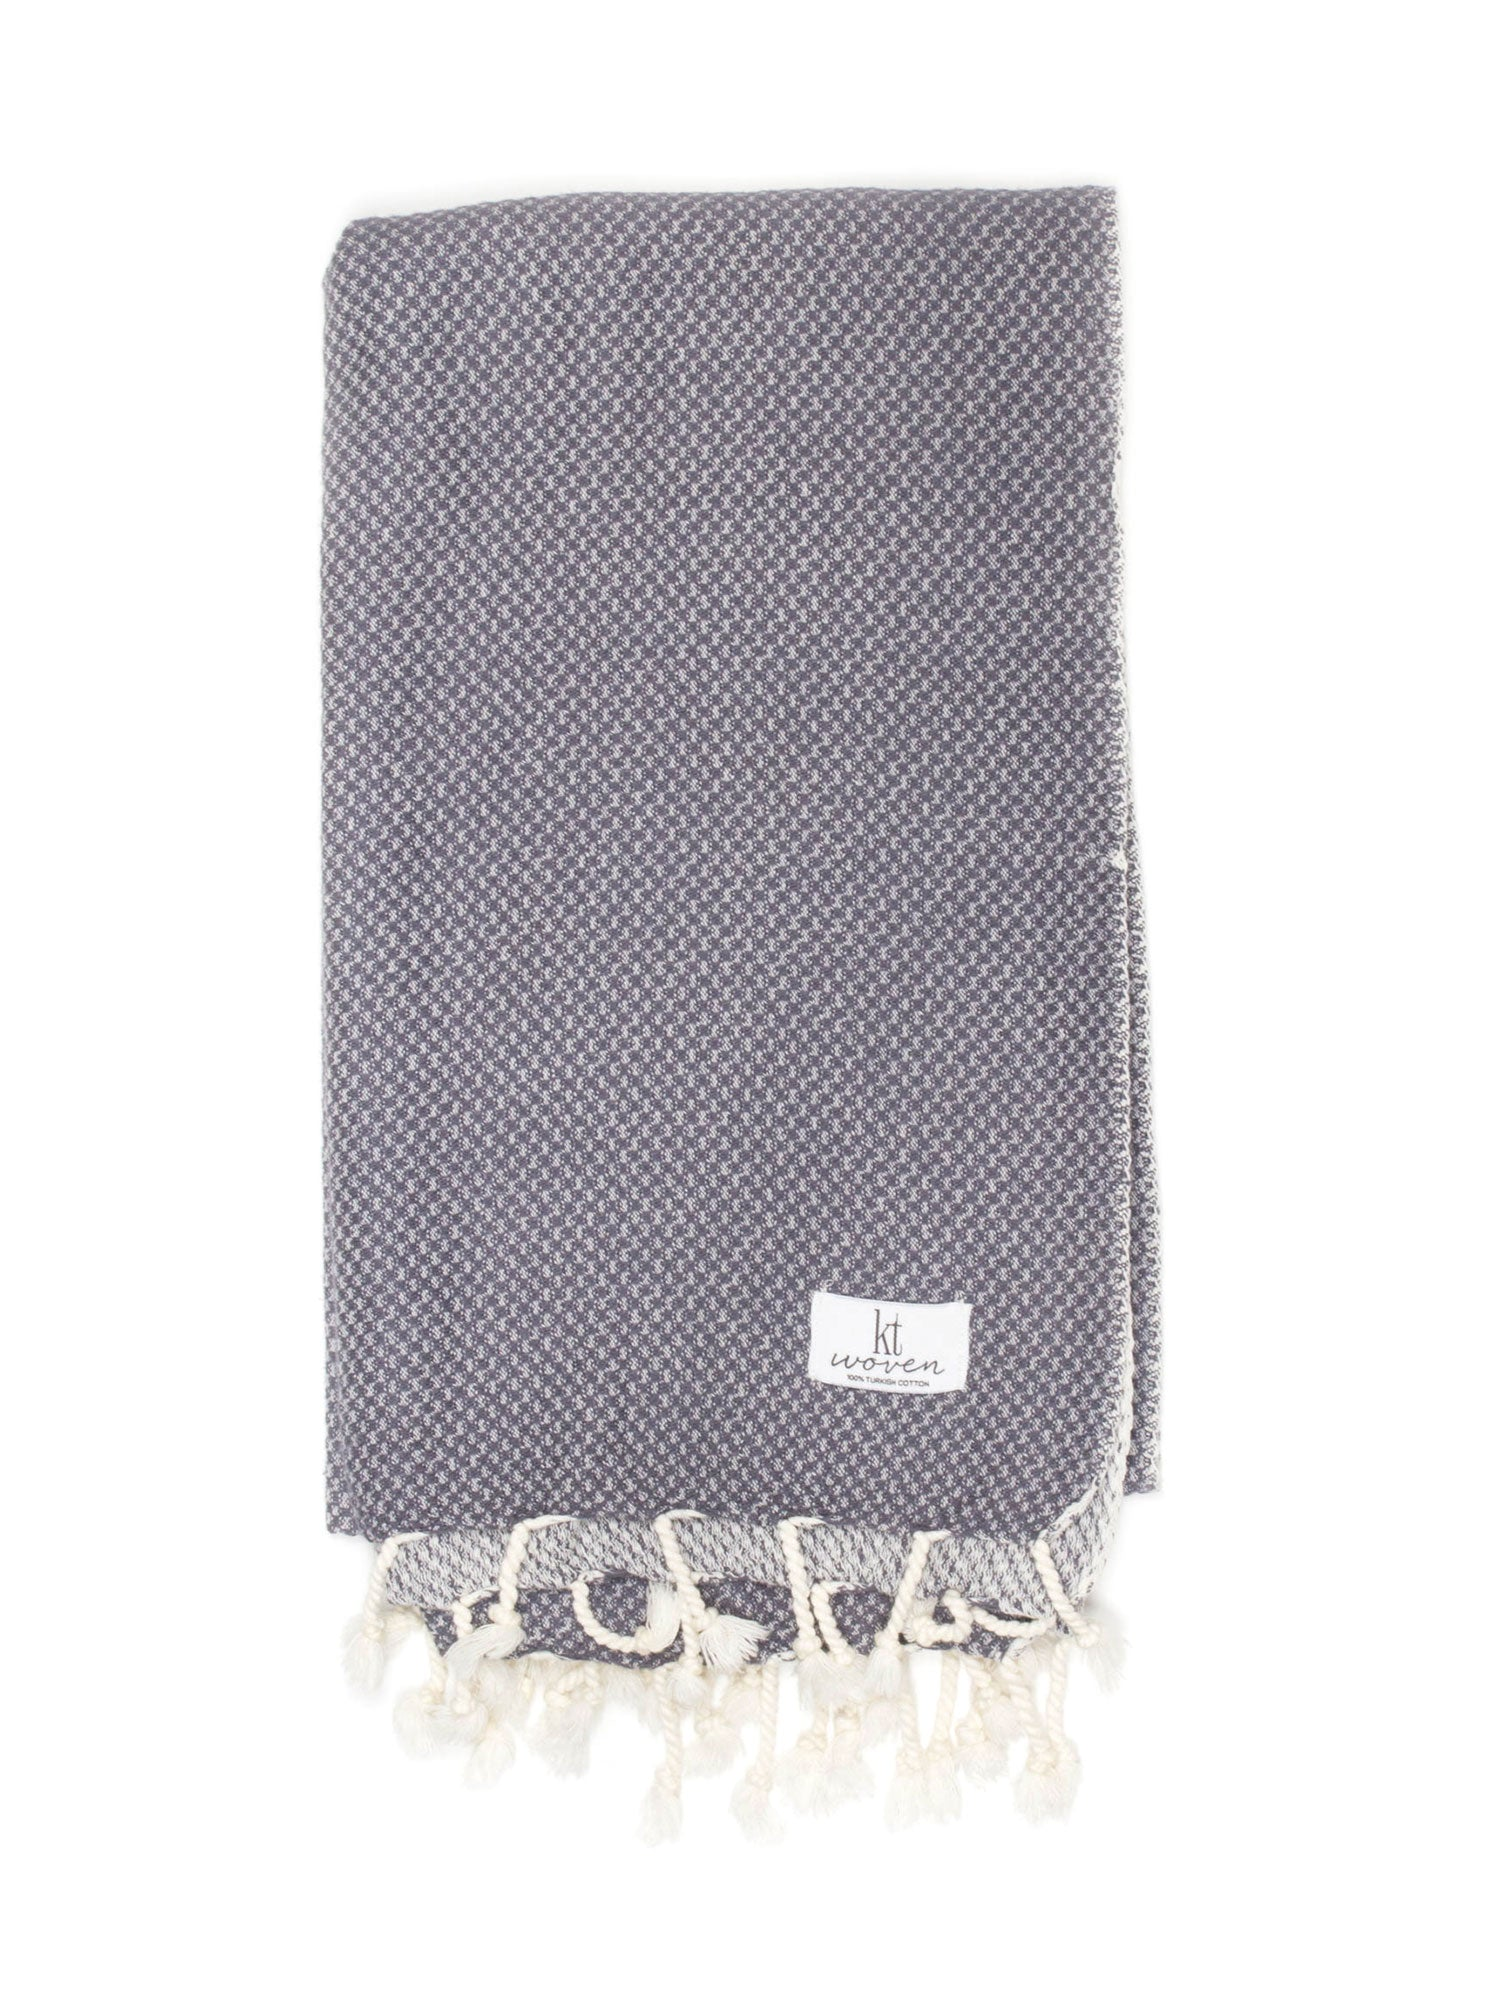 Honey Comb Turkish Towel